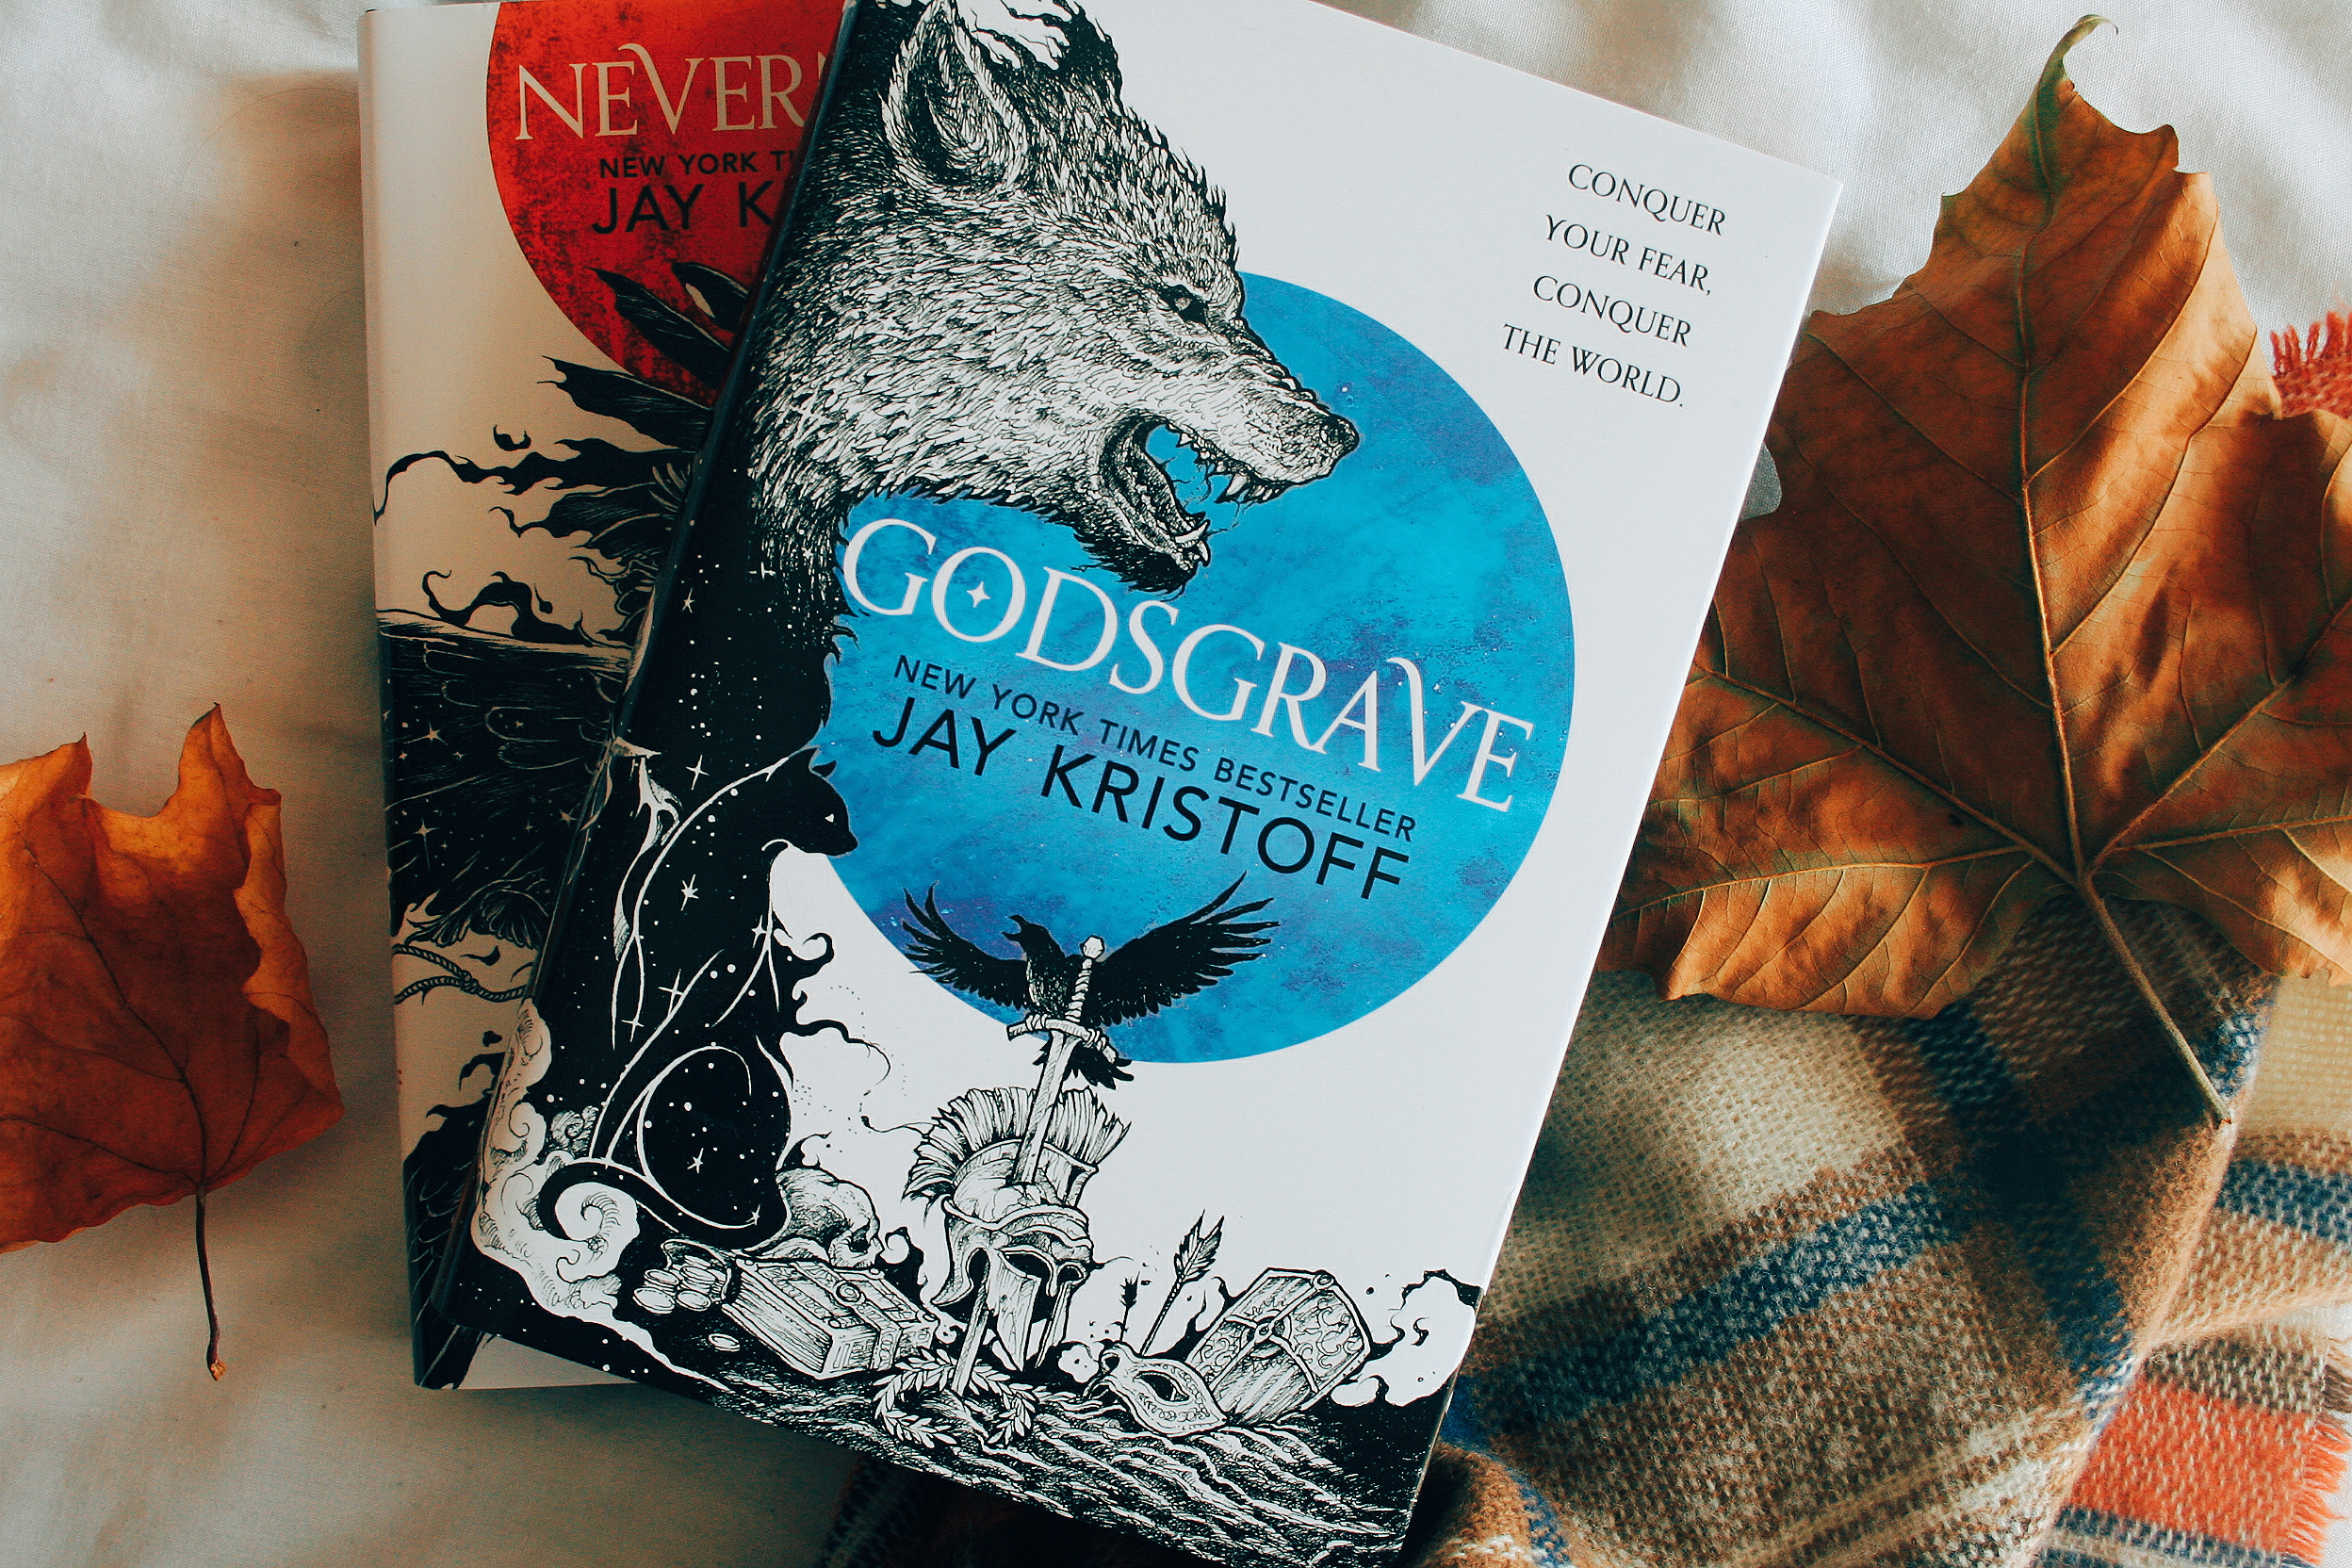 nevernight by jay kristoff on a bed with leaves